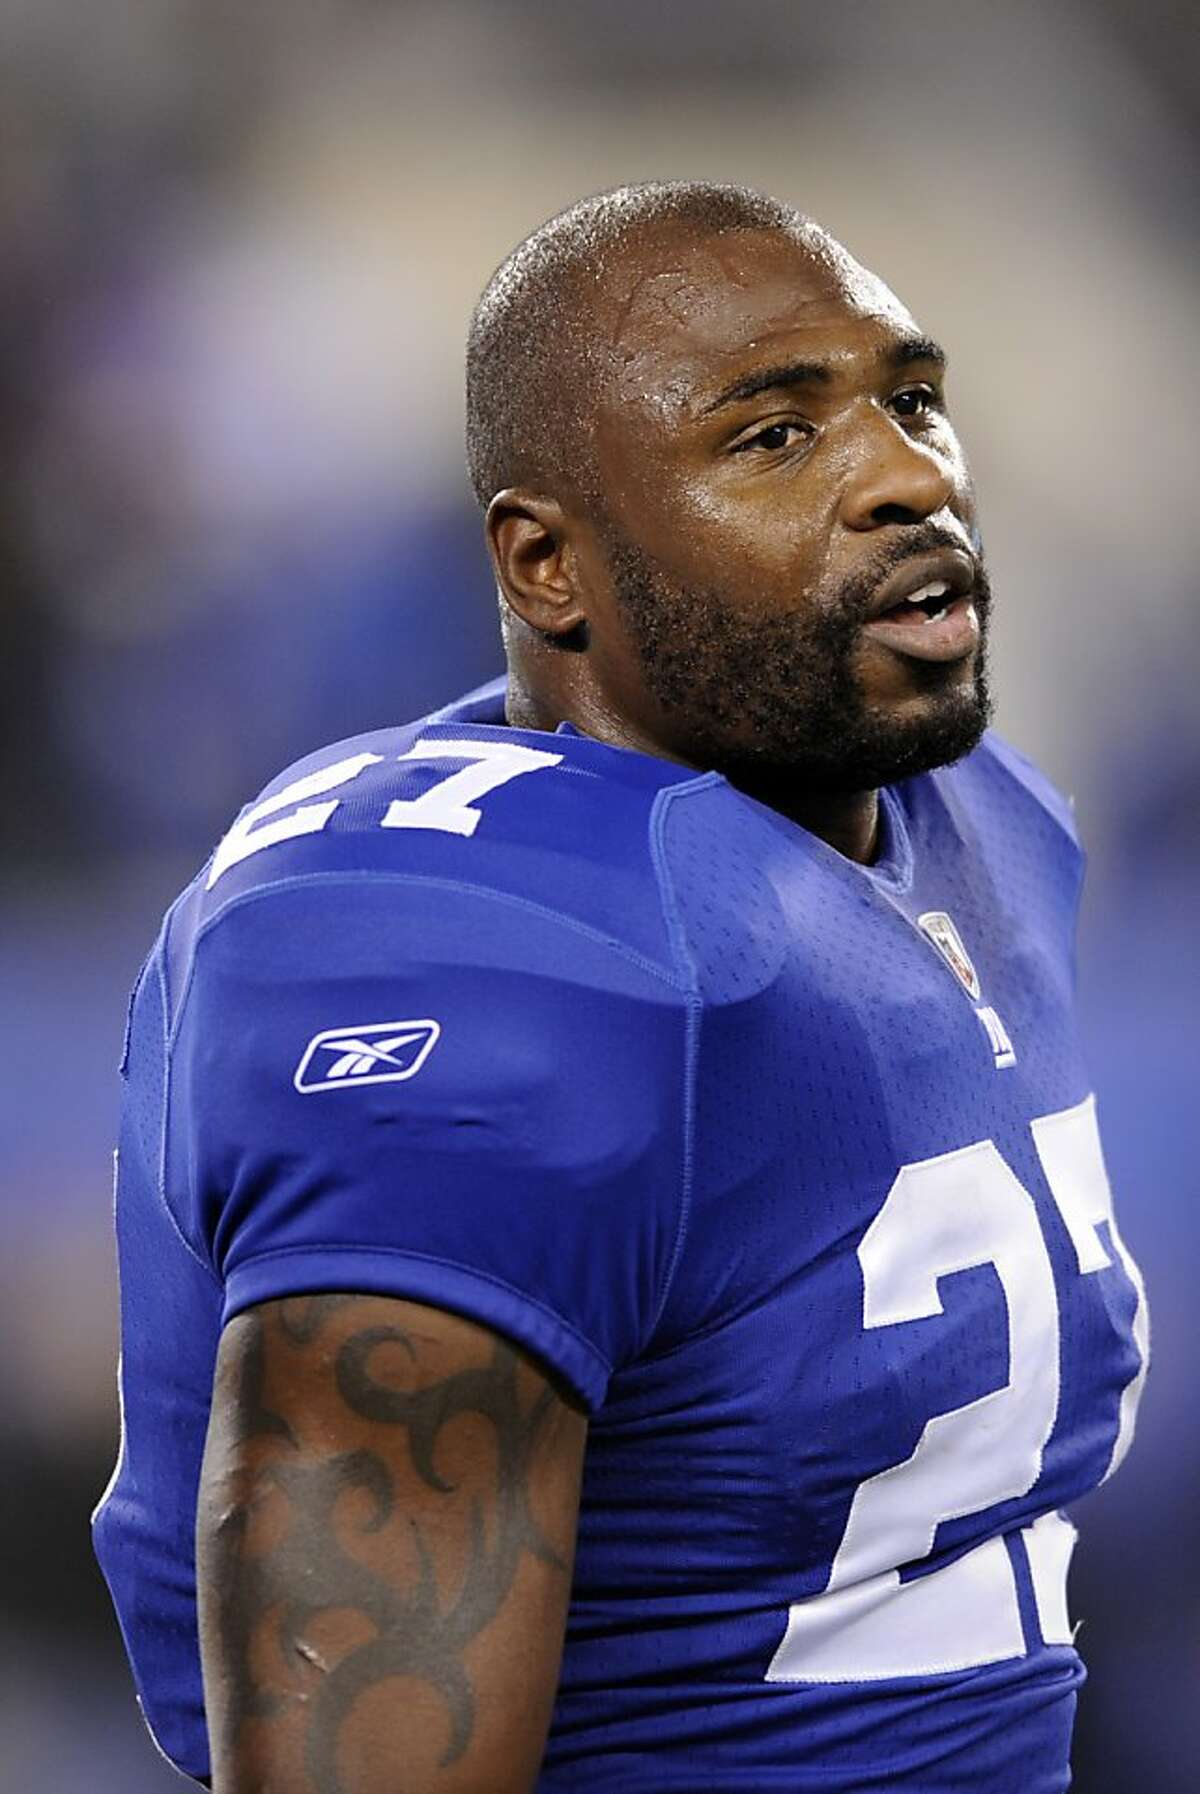 FILE - This Nov. 20, 2011 file photo shows New York Giants running back Brandon Jacobs before an NFL football game against the Philadelphia Eagles, in East Rutherford, N.J. A person with knowledge of the contract says Jacobs and the San Francisco 49ers have agreed to terms on a one-year deal. (AP Photo/Bill Kostroun, File)